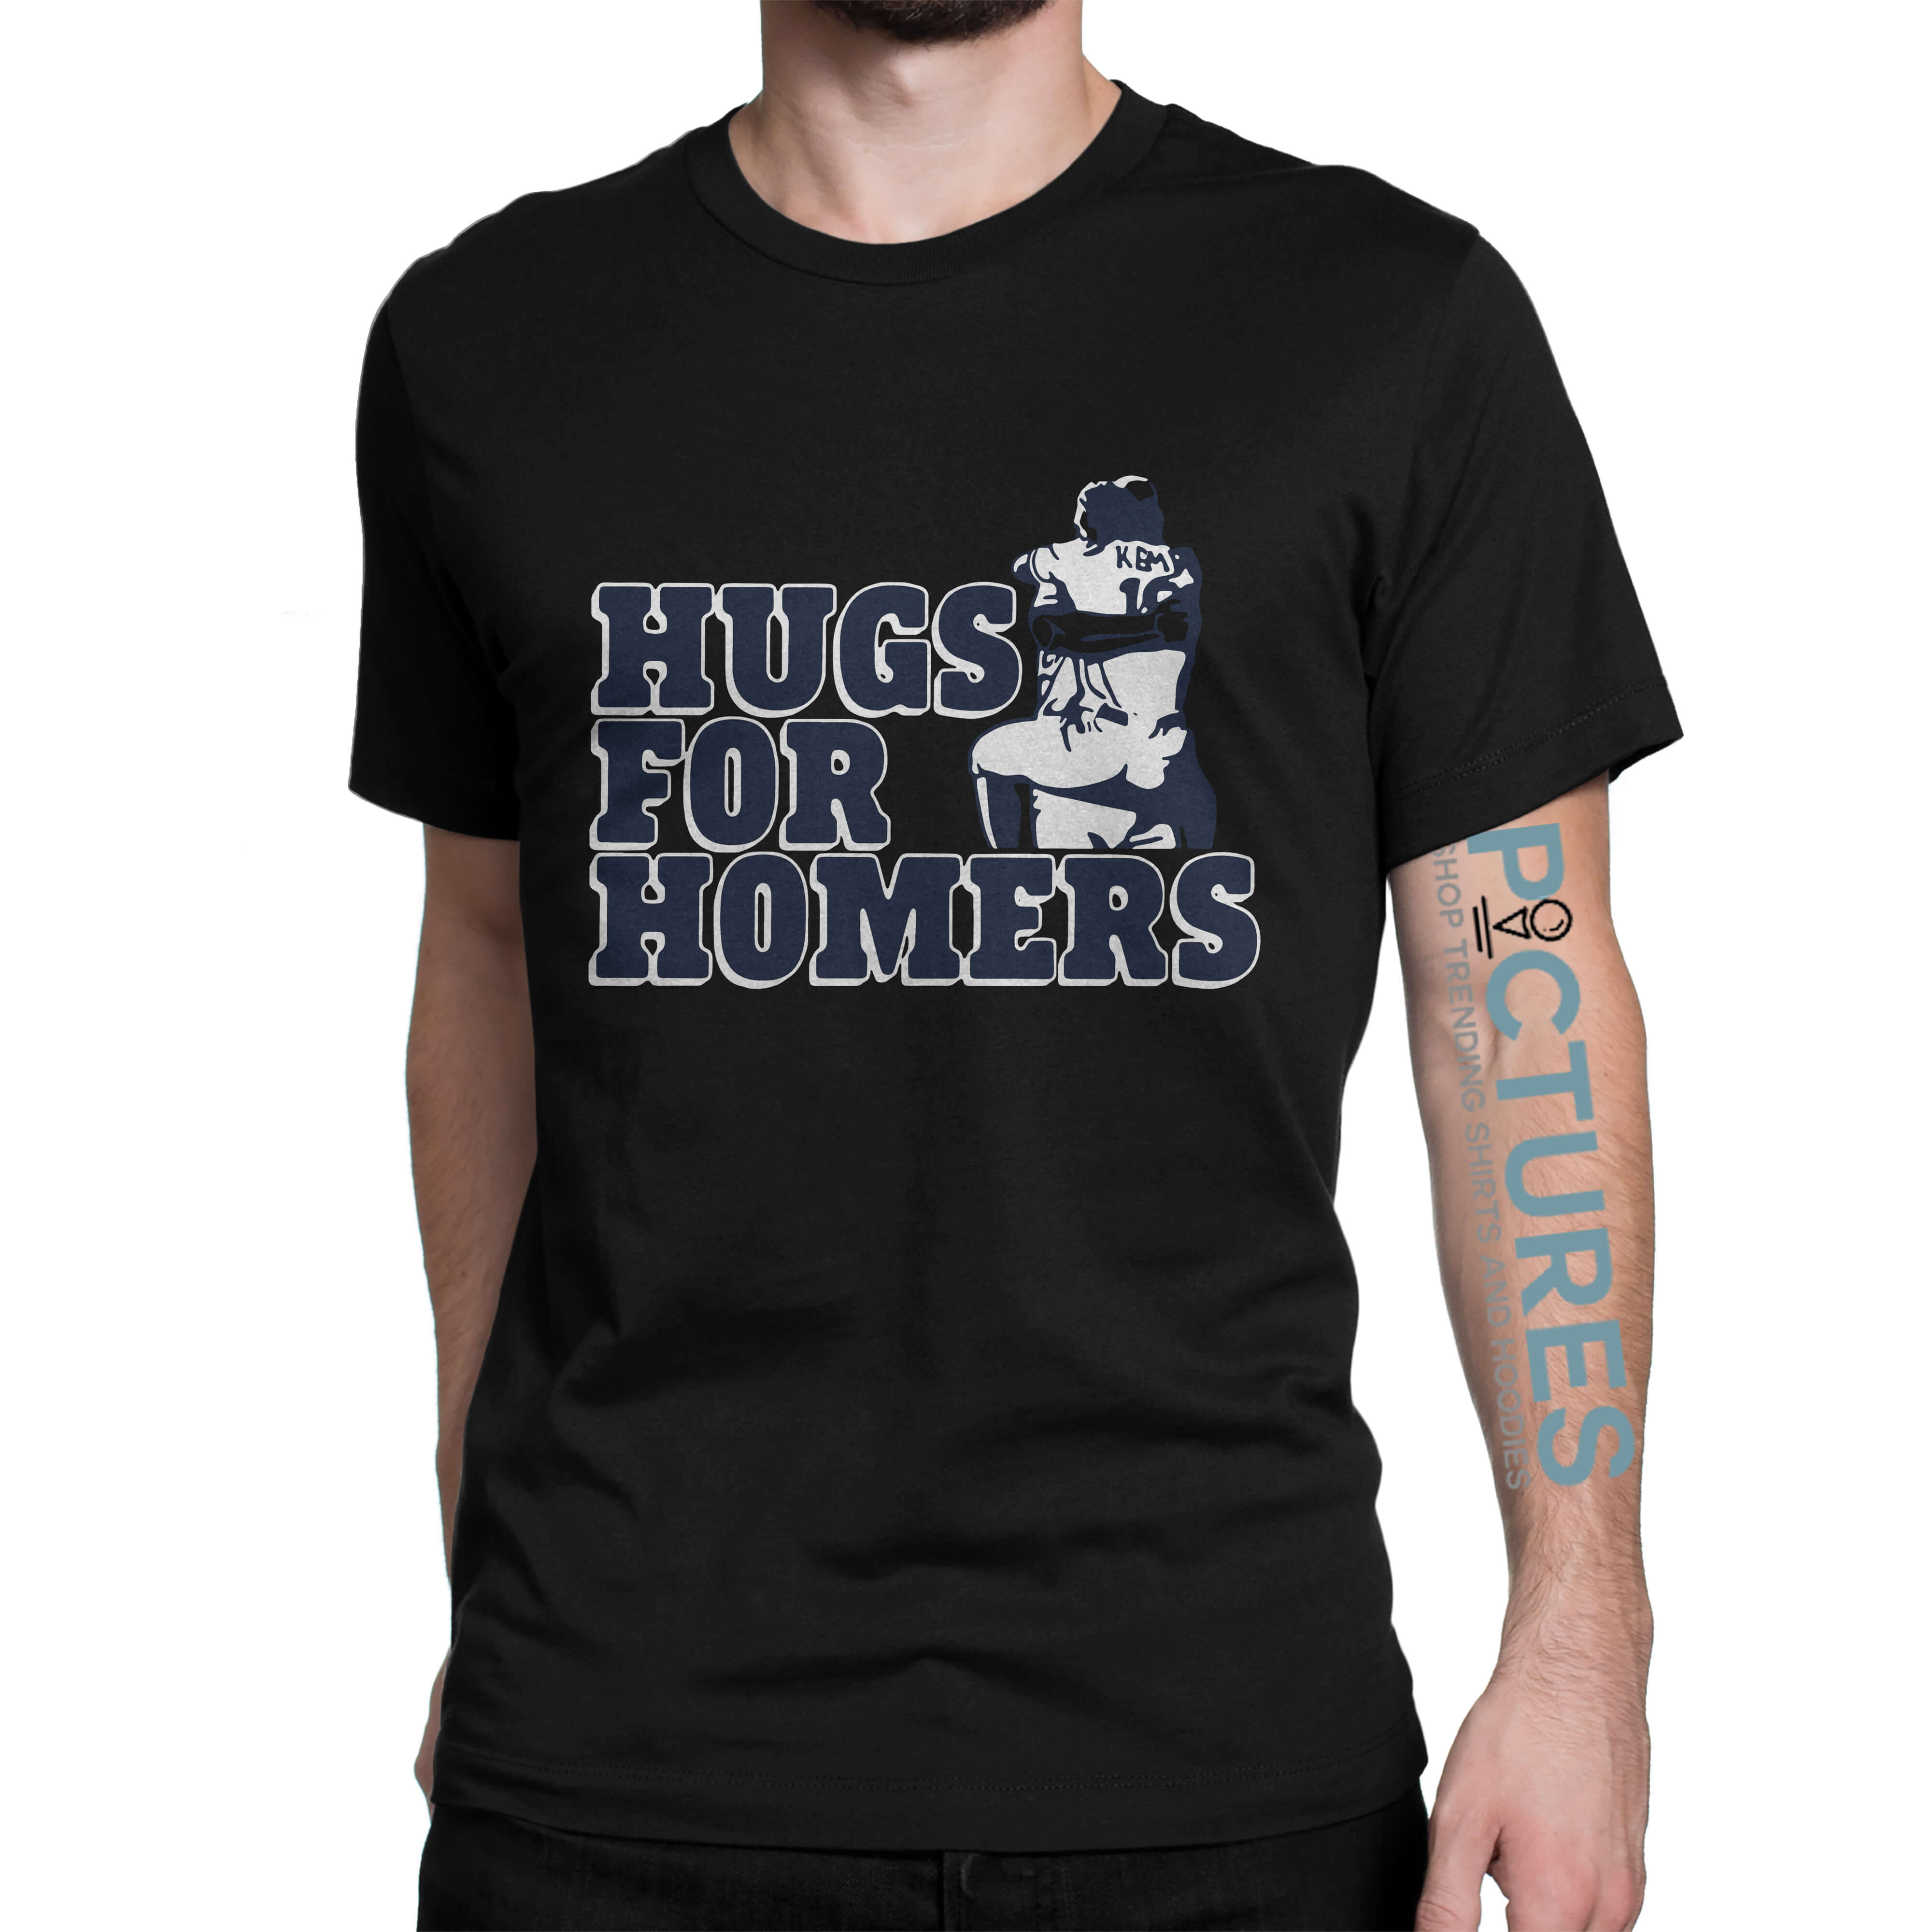 Official Kemp selling Hugs for Homers shirt